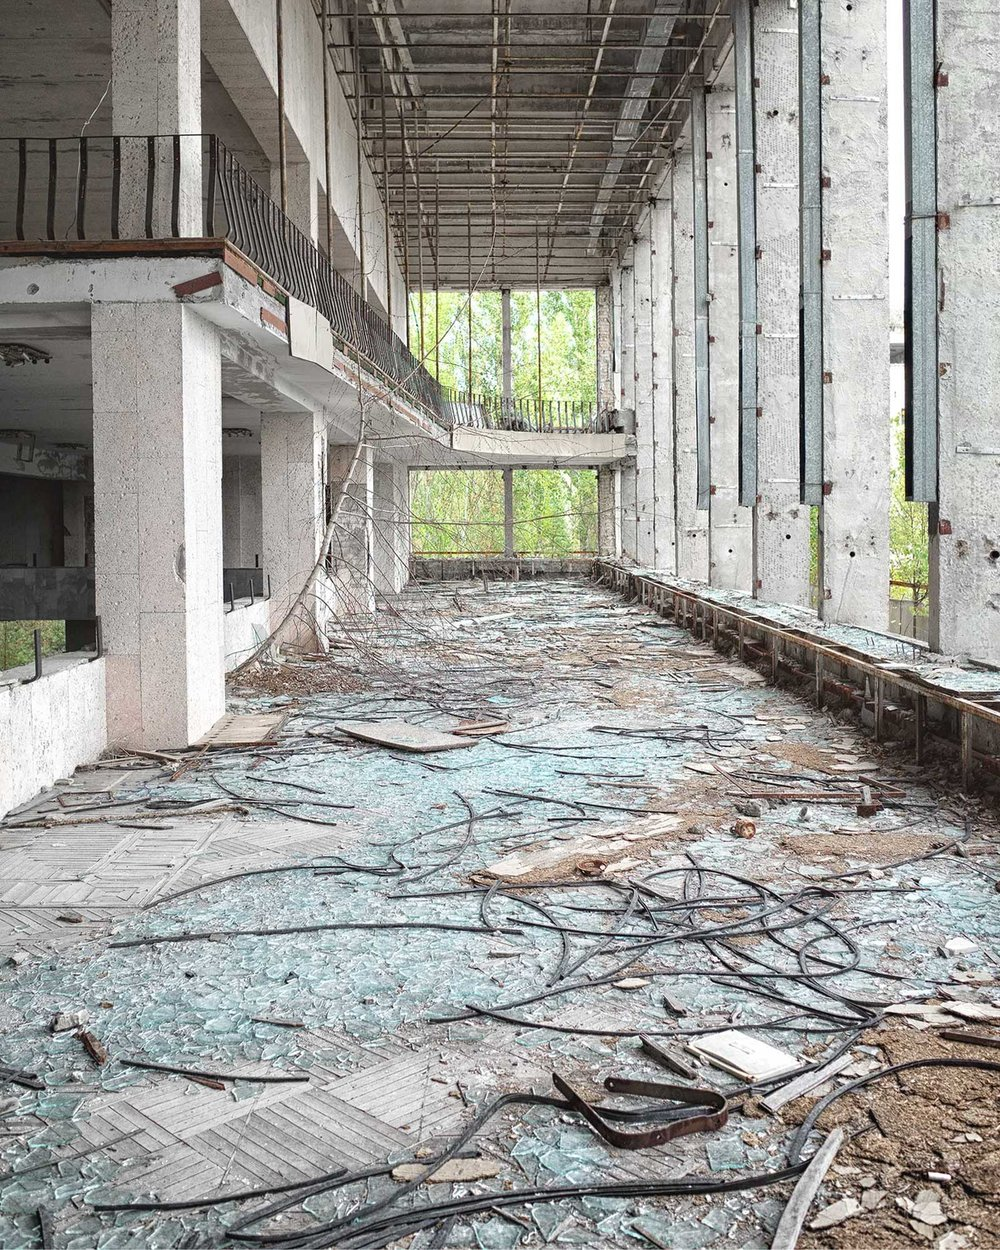 061_chernobyl_PalaceOfCulture_w.jpg